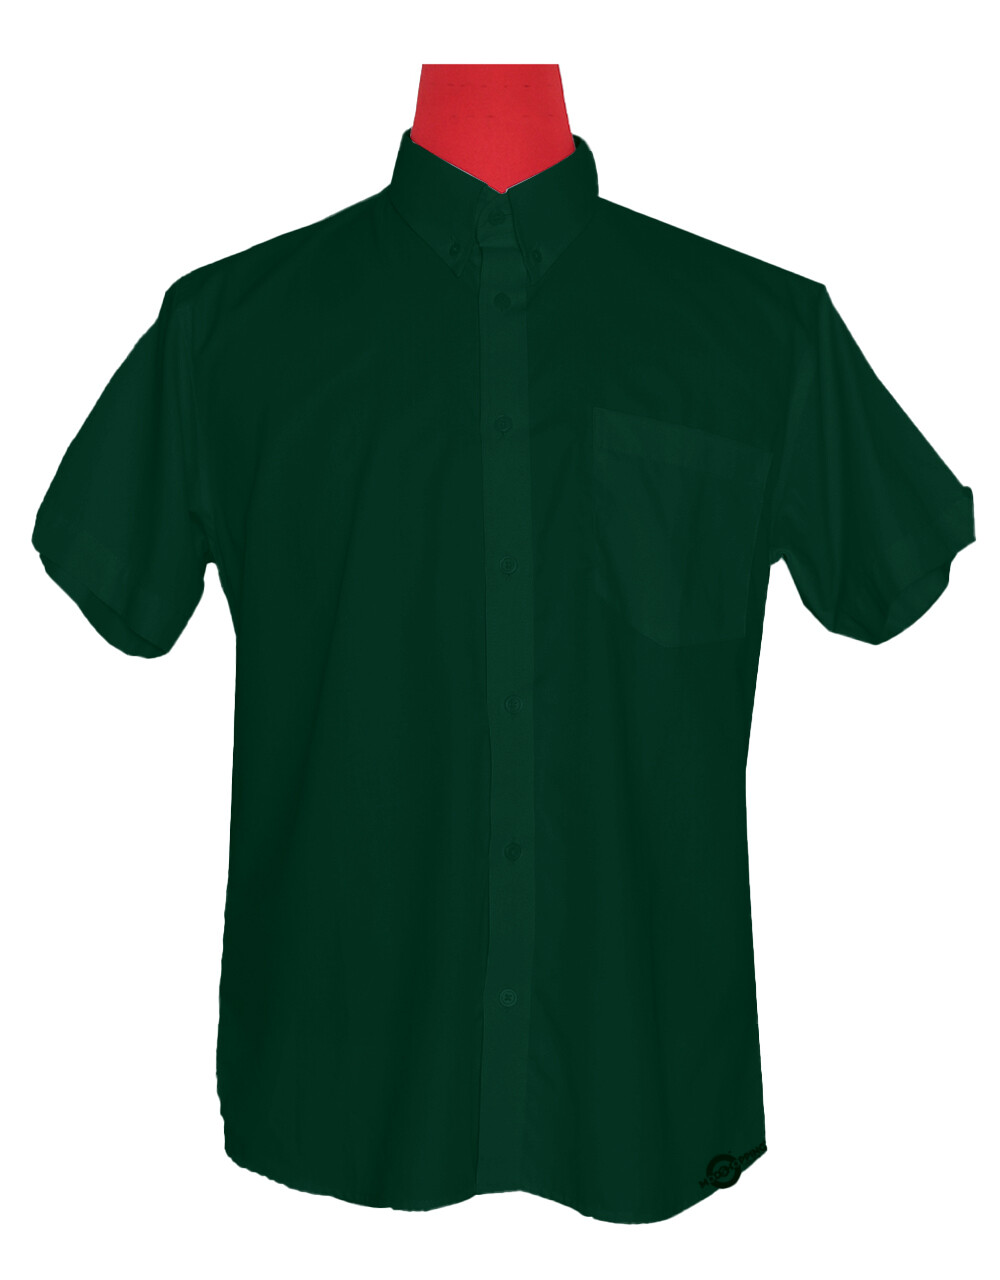 Short-Sleeve Shirt | 60S Mod Style Dark Green Color Shirt For Man